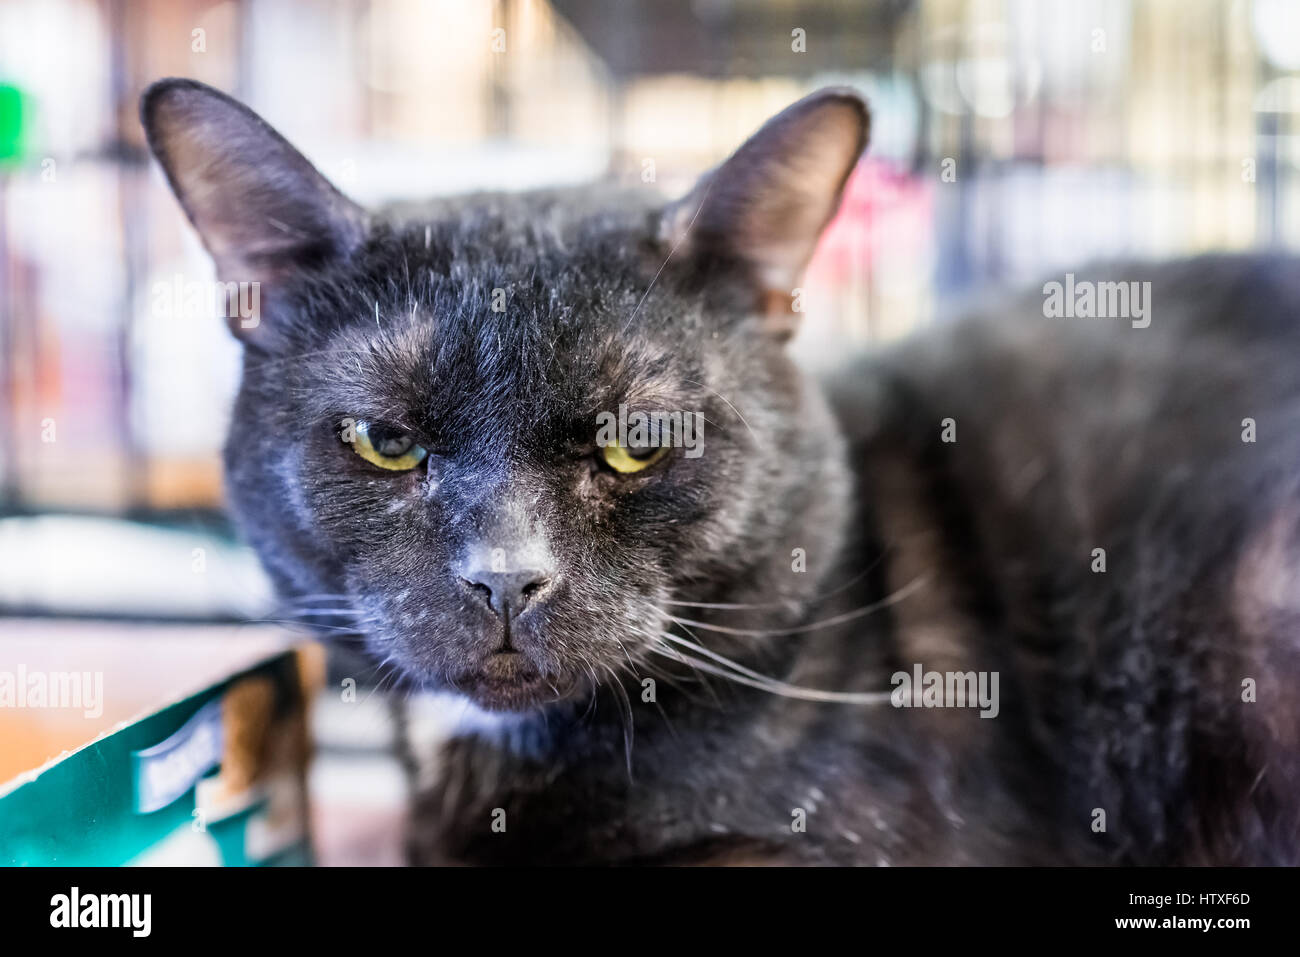 Unhappy dirty angry black cat face closeup in cage in store - Stock Image